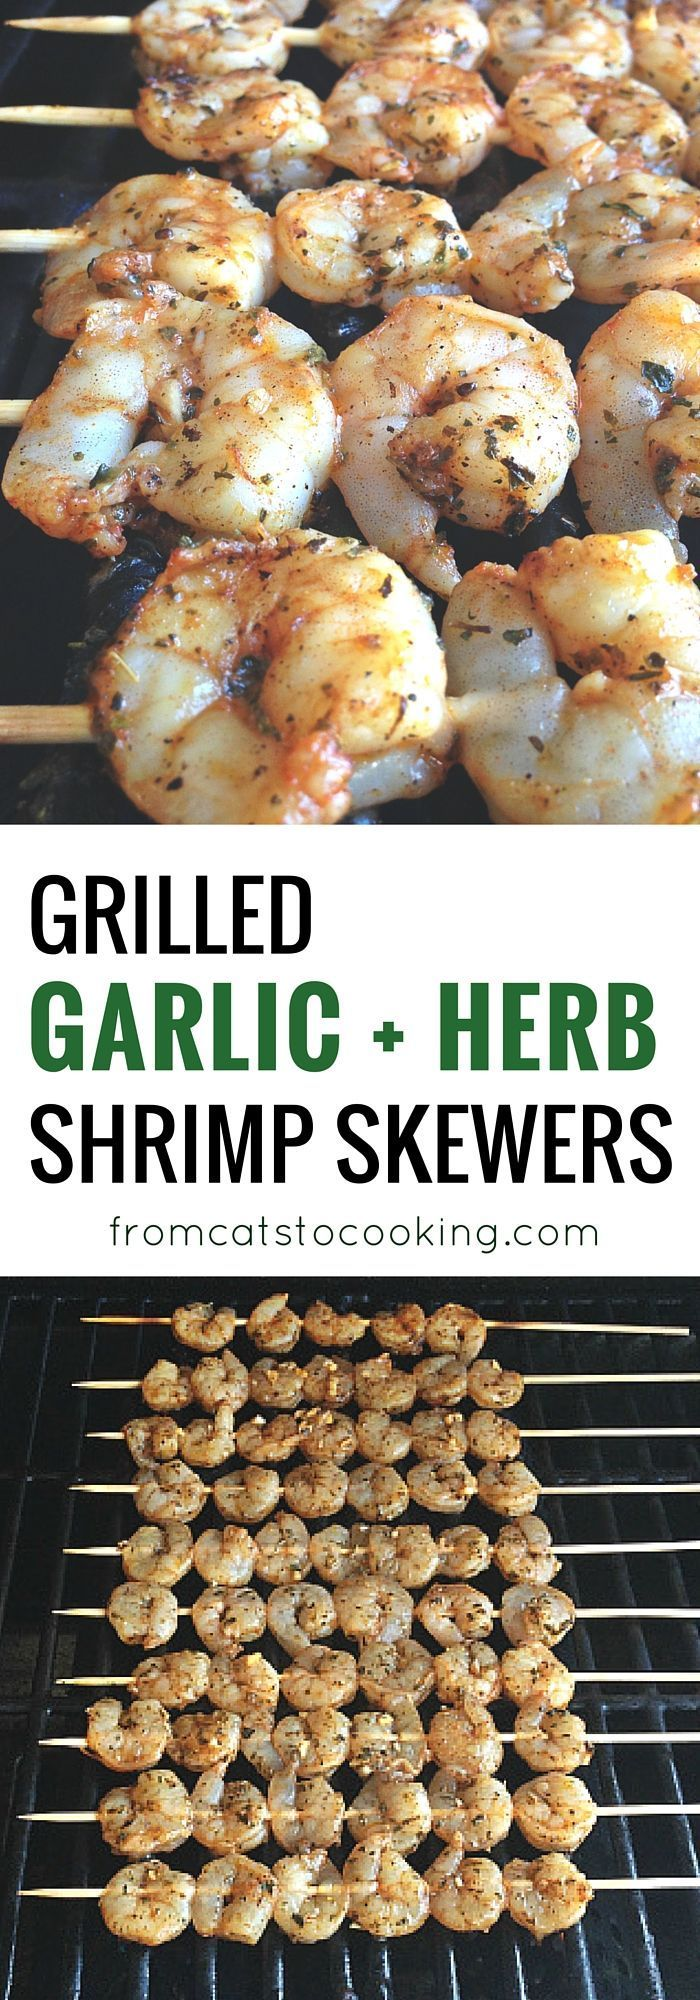 Grilled Garlic Herb Shrimp Skewers Recipe that's paleo, gluten free and Whole 30 friendly! Perfect for grilling on a nice spring or summer day.